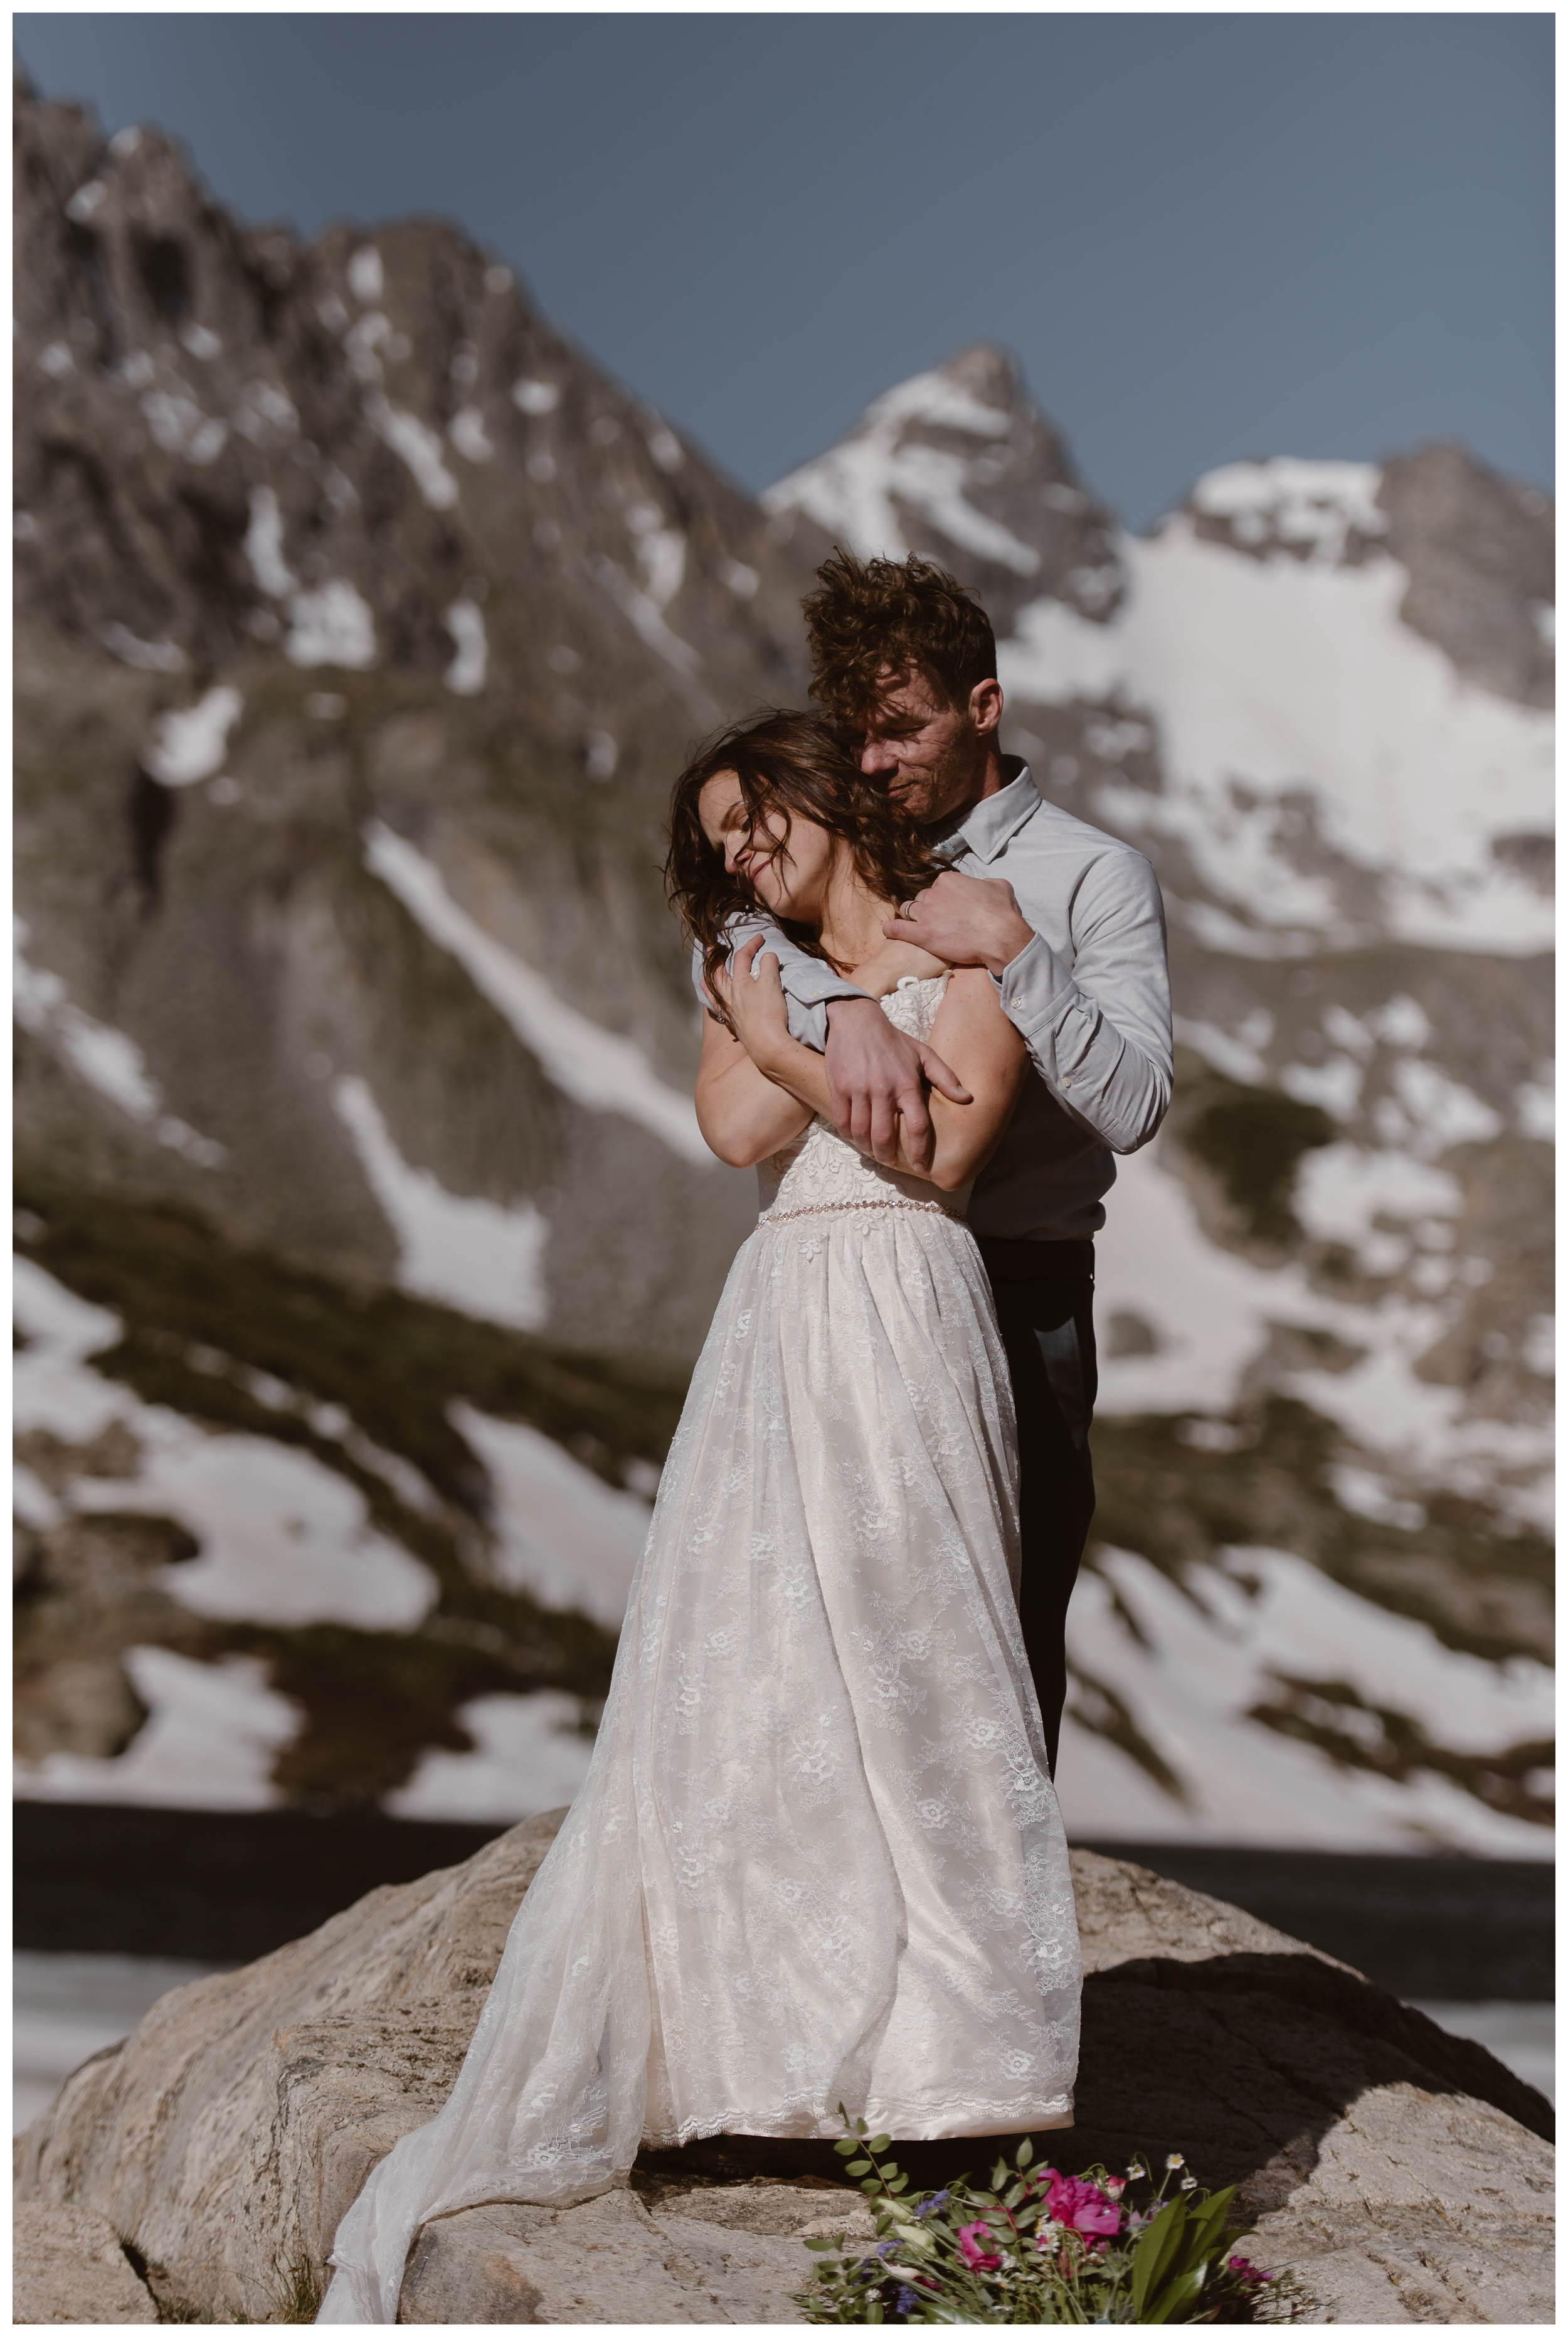 Karen and Matt hiked to the top of Lake Isabelle, outside Nederland, Colorado so they could have a high alpine lake elopement ceremony. Photo by Adventure Instead, Maddie Mae.